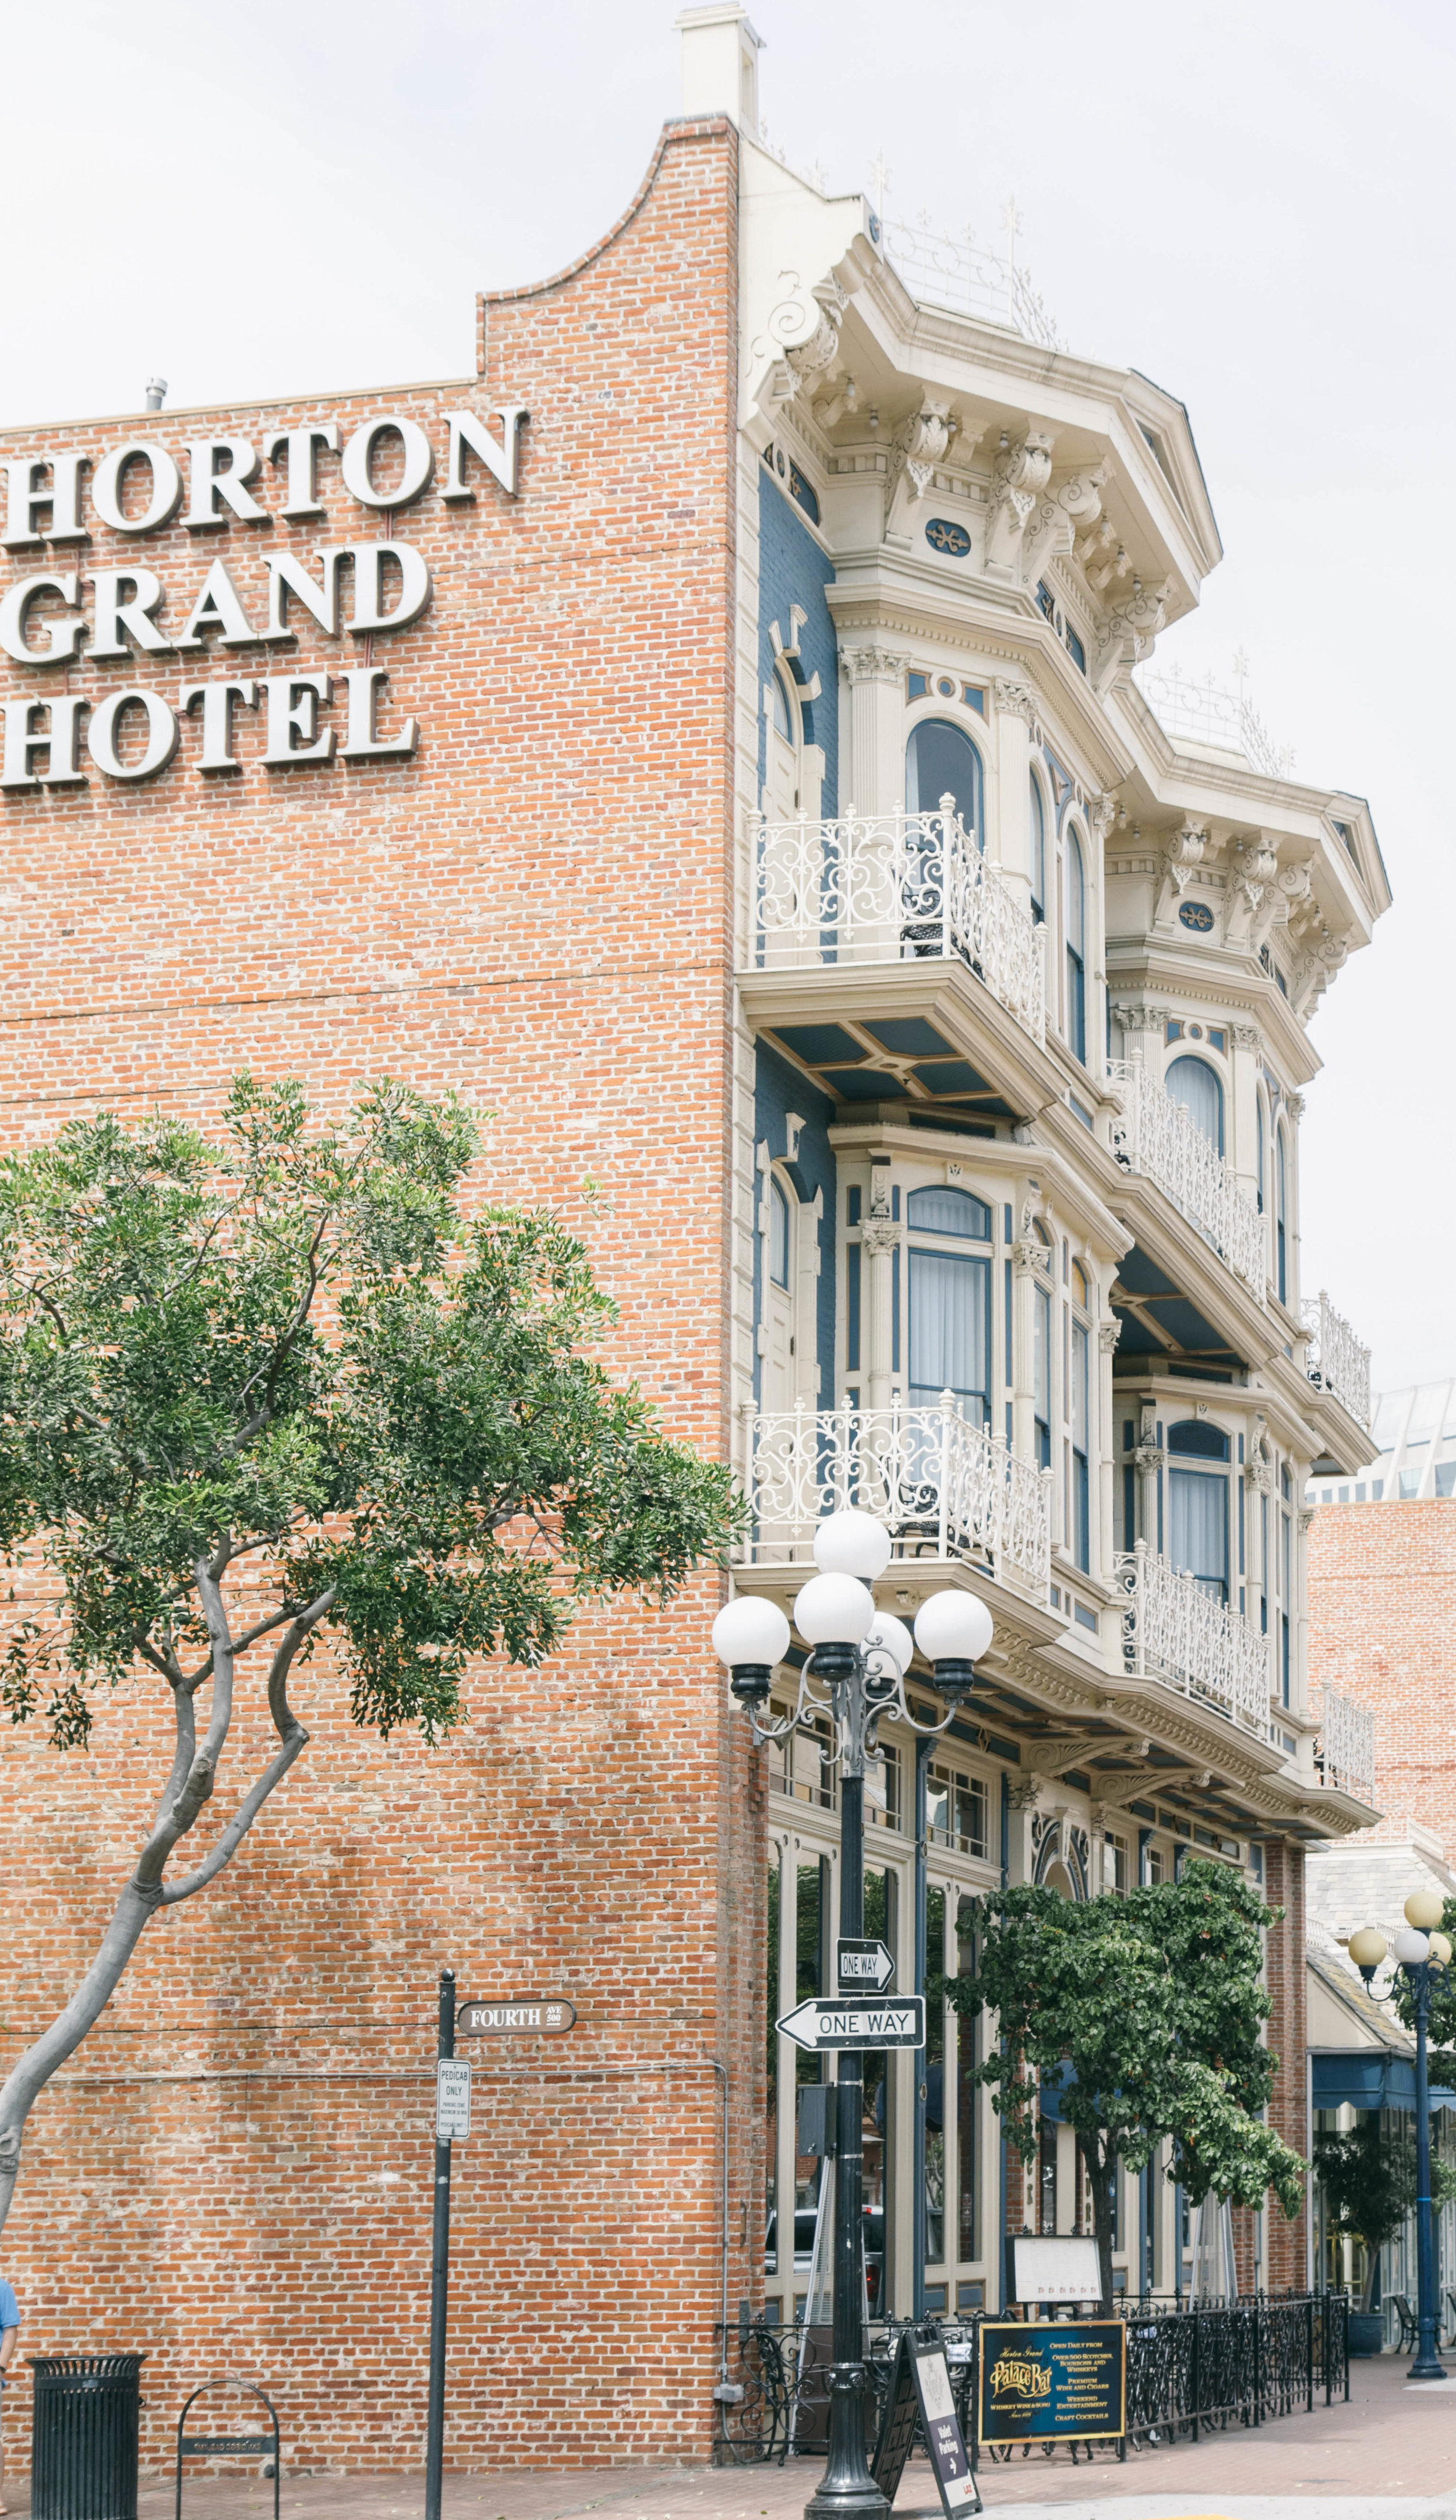 The Horton Grand Hotel, at the corner of Island and Fourth Avenue.